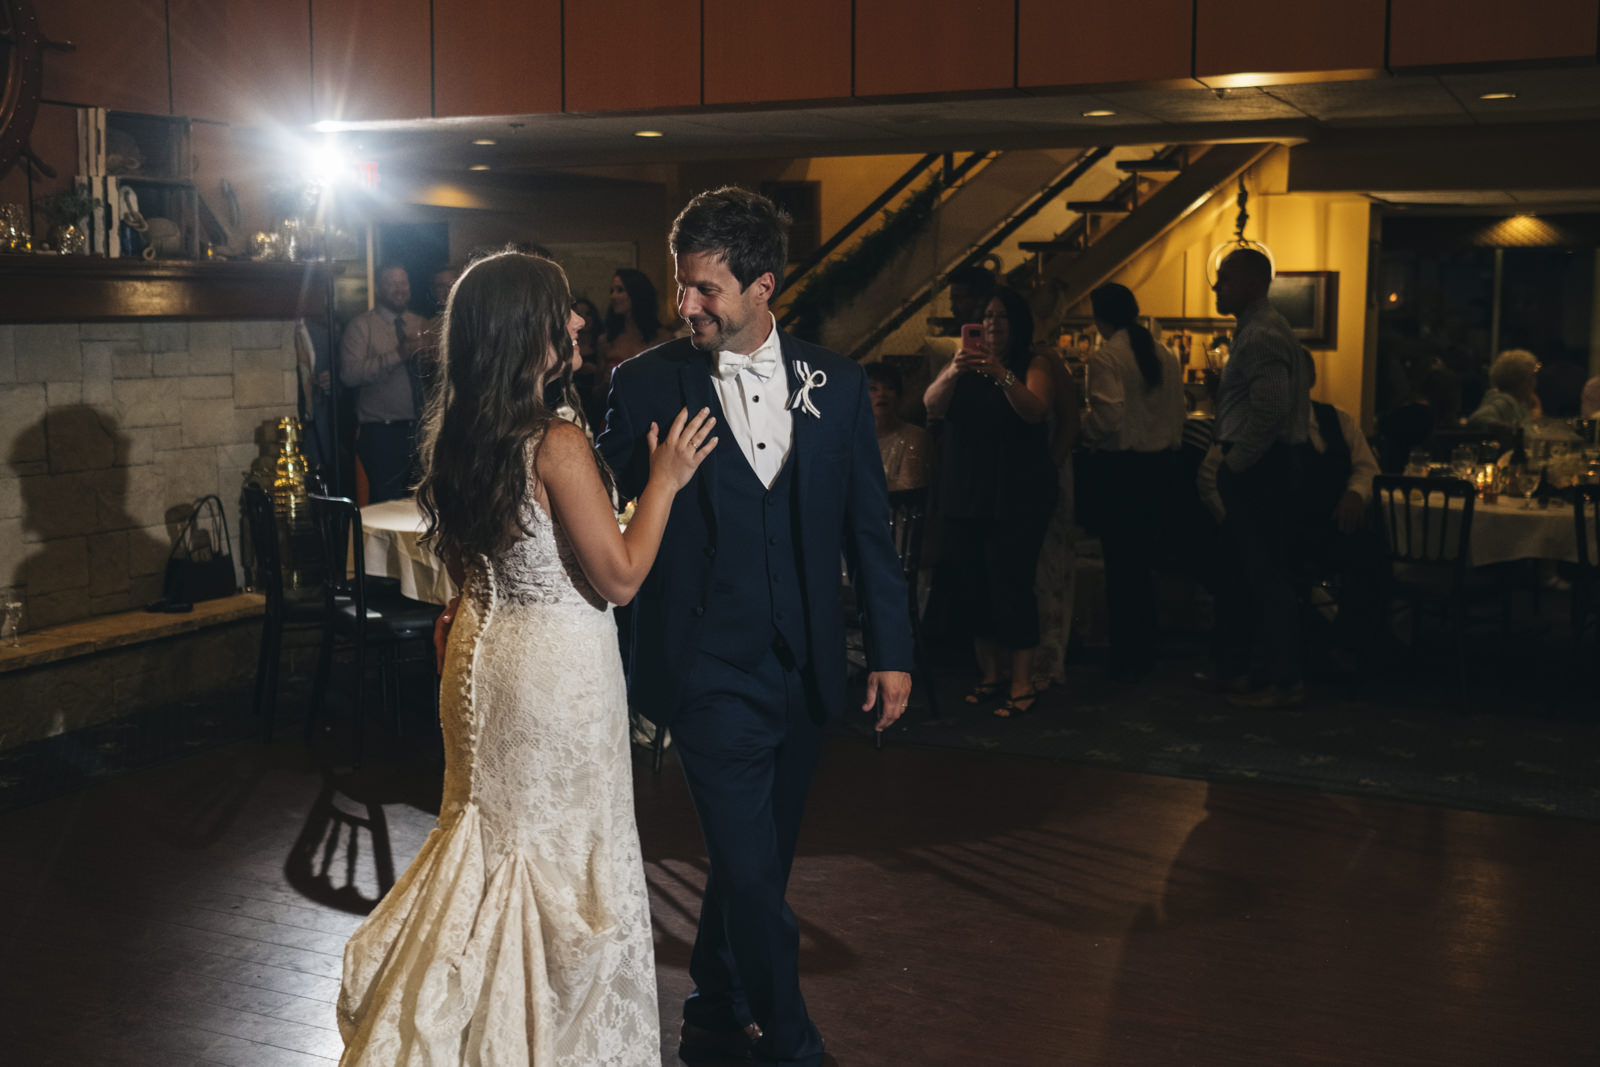 Bride and groom make their way to the dance floor for their first dance in Michigan.